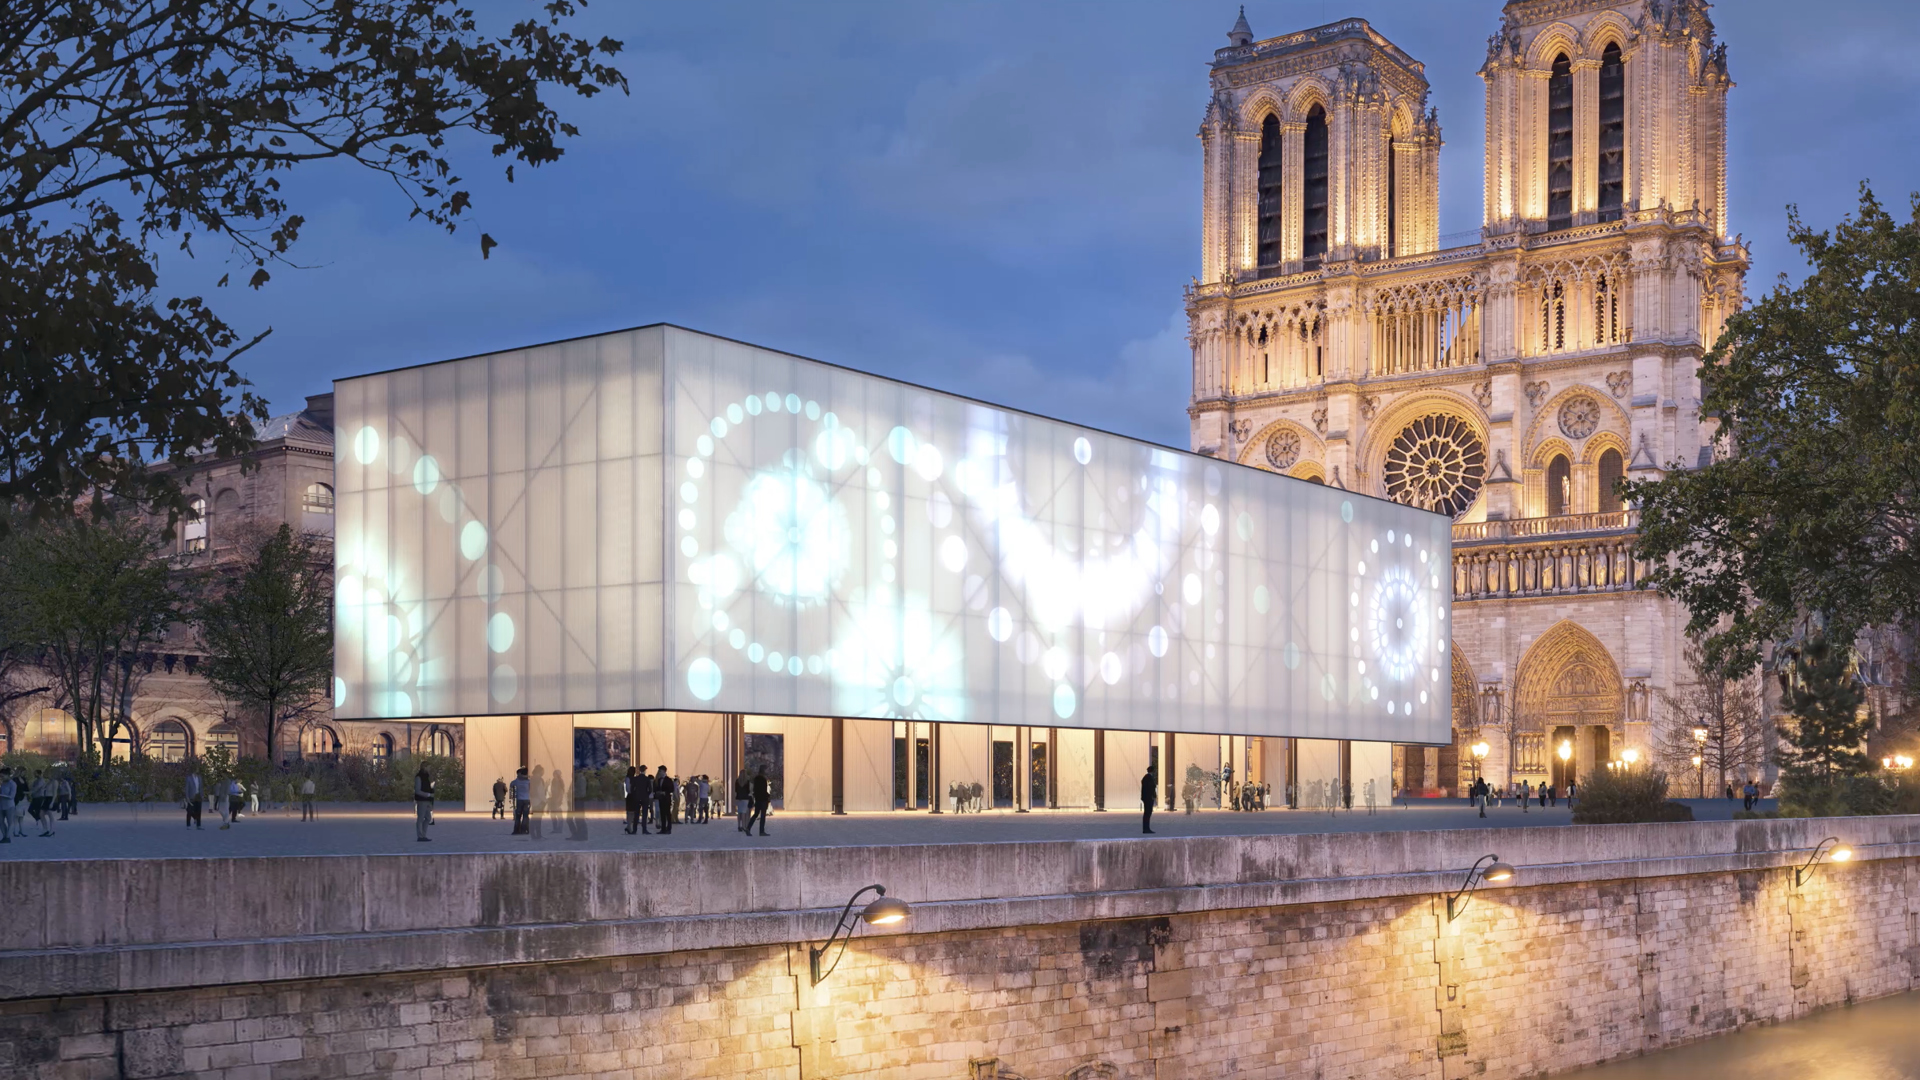 Gensler proposes a temporary pavilion in front of the Notre-Dame Cathedral